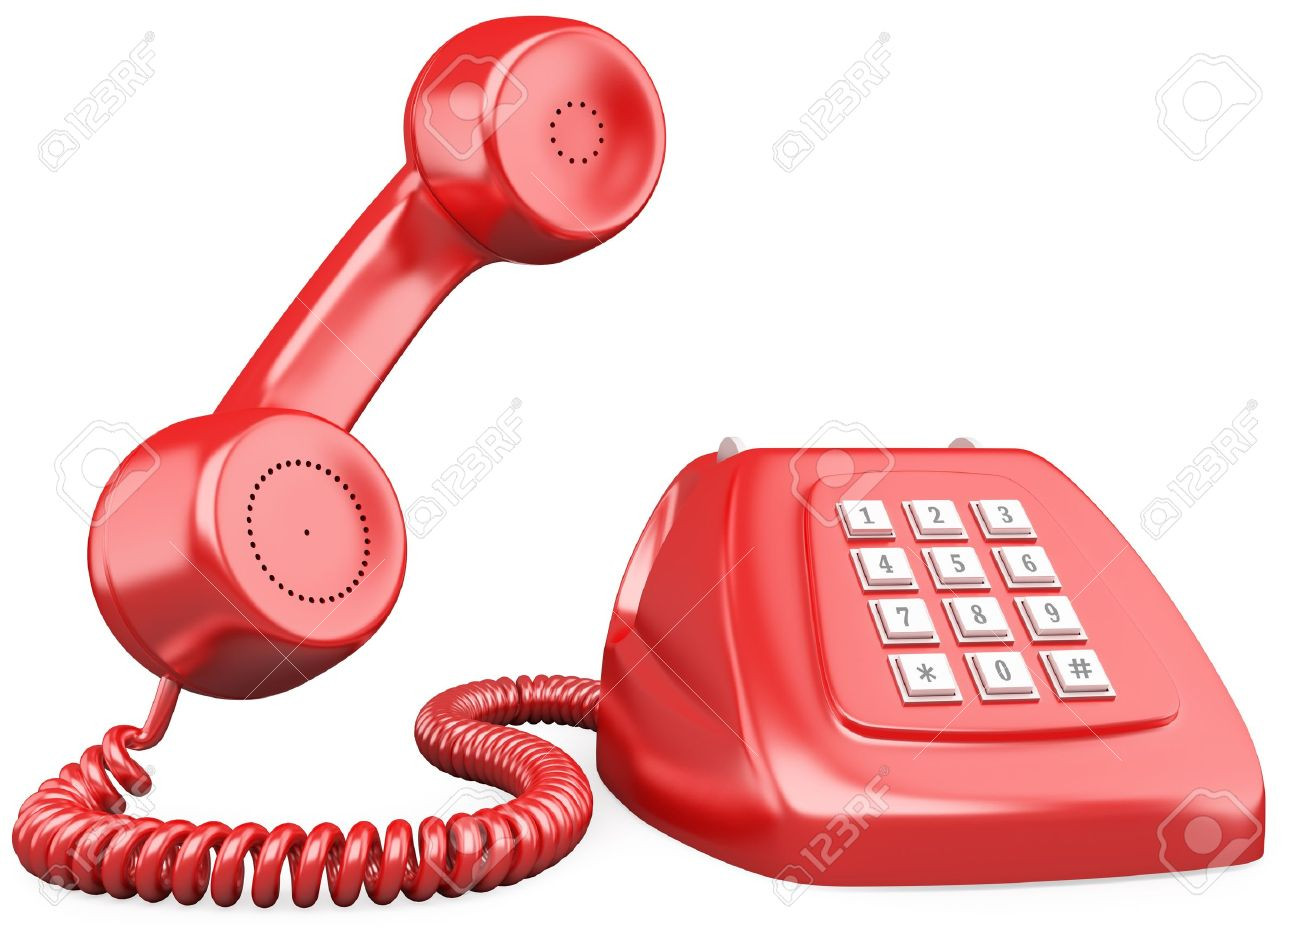 3D red old fashioned style telephone. Rendered at high resolution on a white background with diffuse shadows. Stock Photo - 12164338